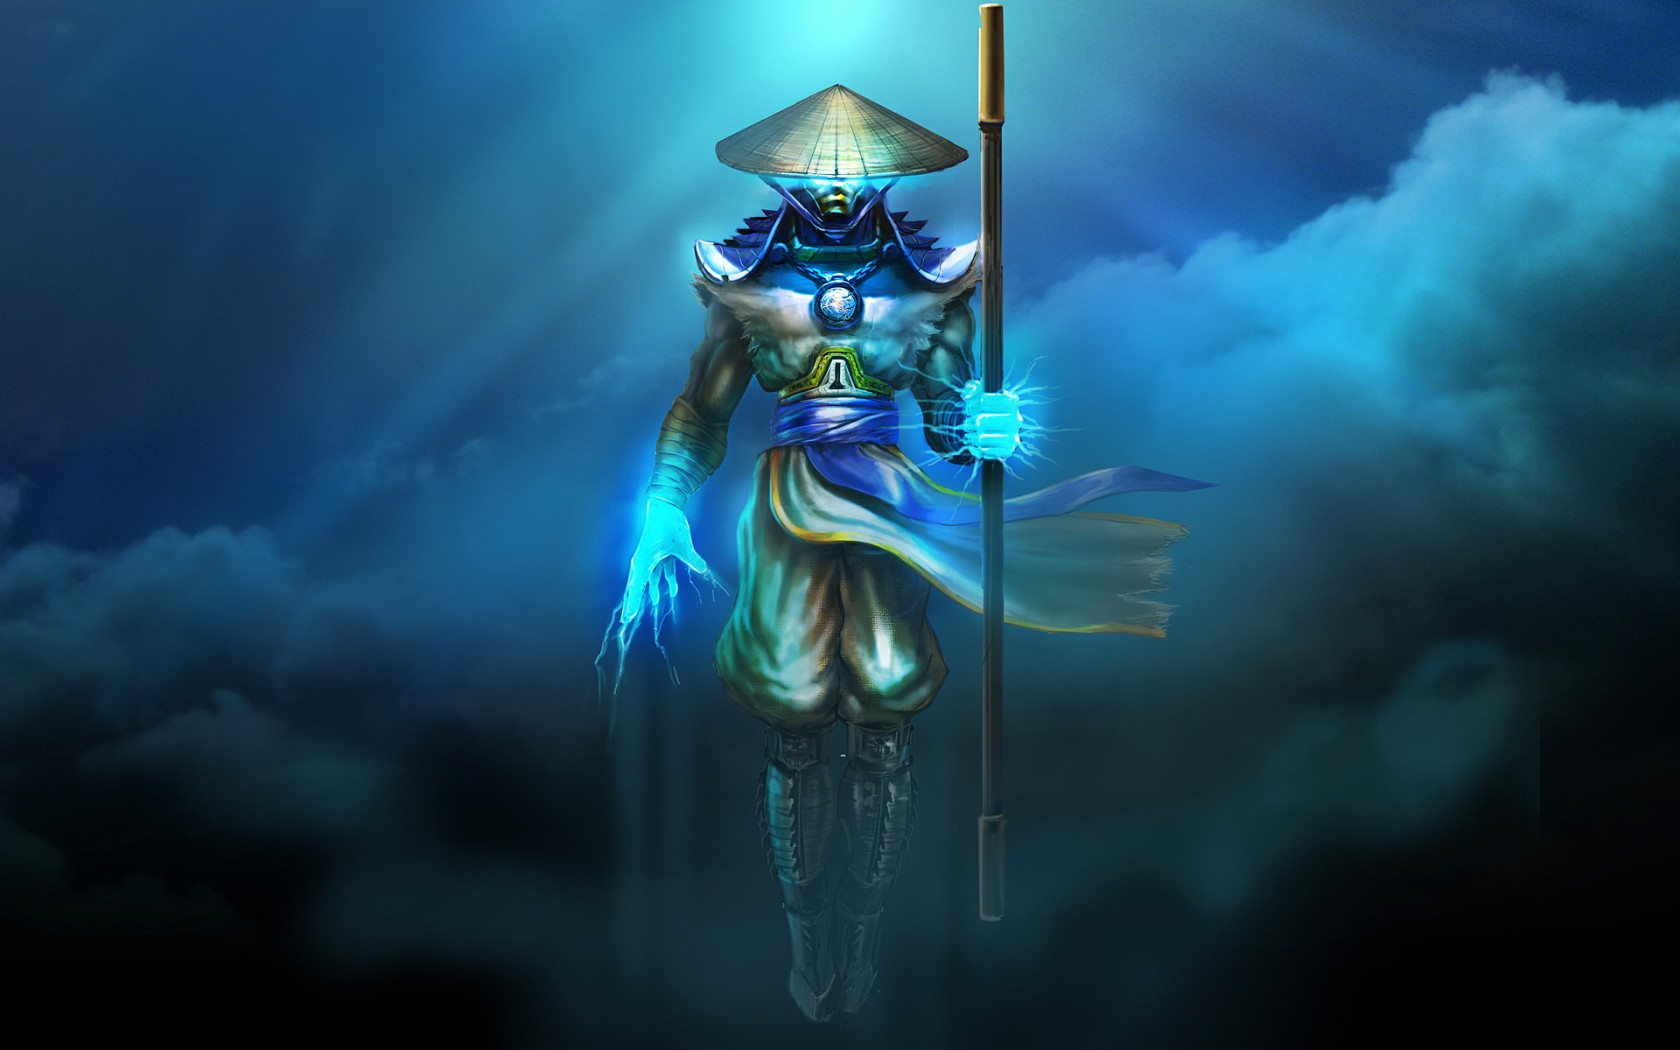 Mortal Kombat wallpaper Raiden 4